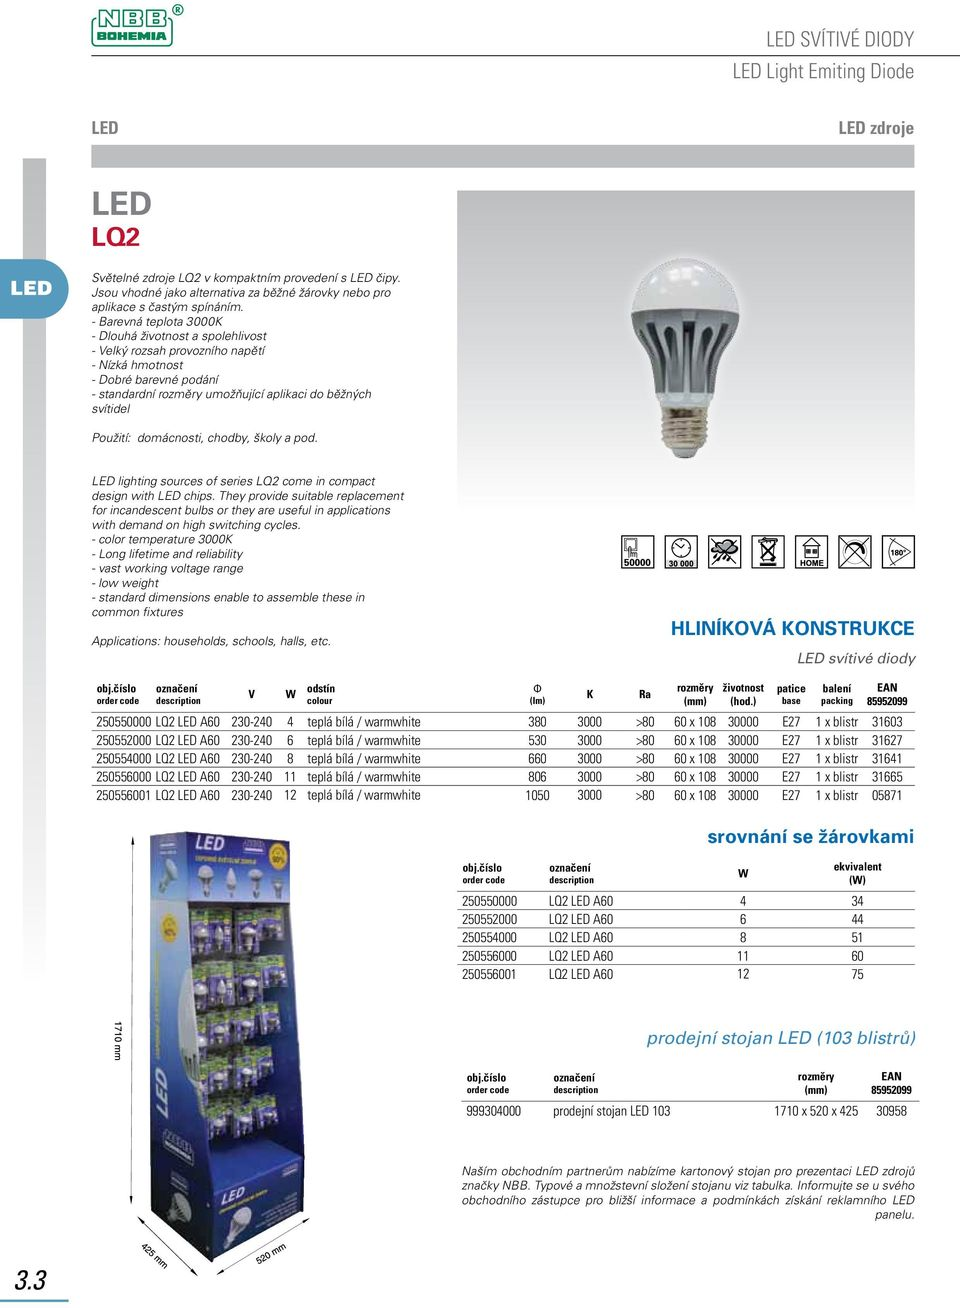 chodby, školy a pod. lighting sources of series LQ2 come in compact design with chips.